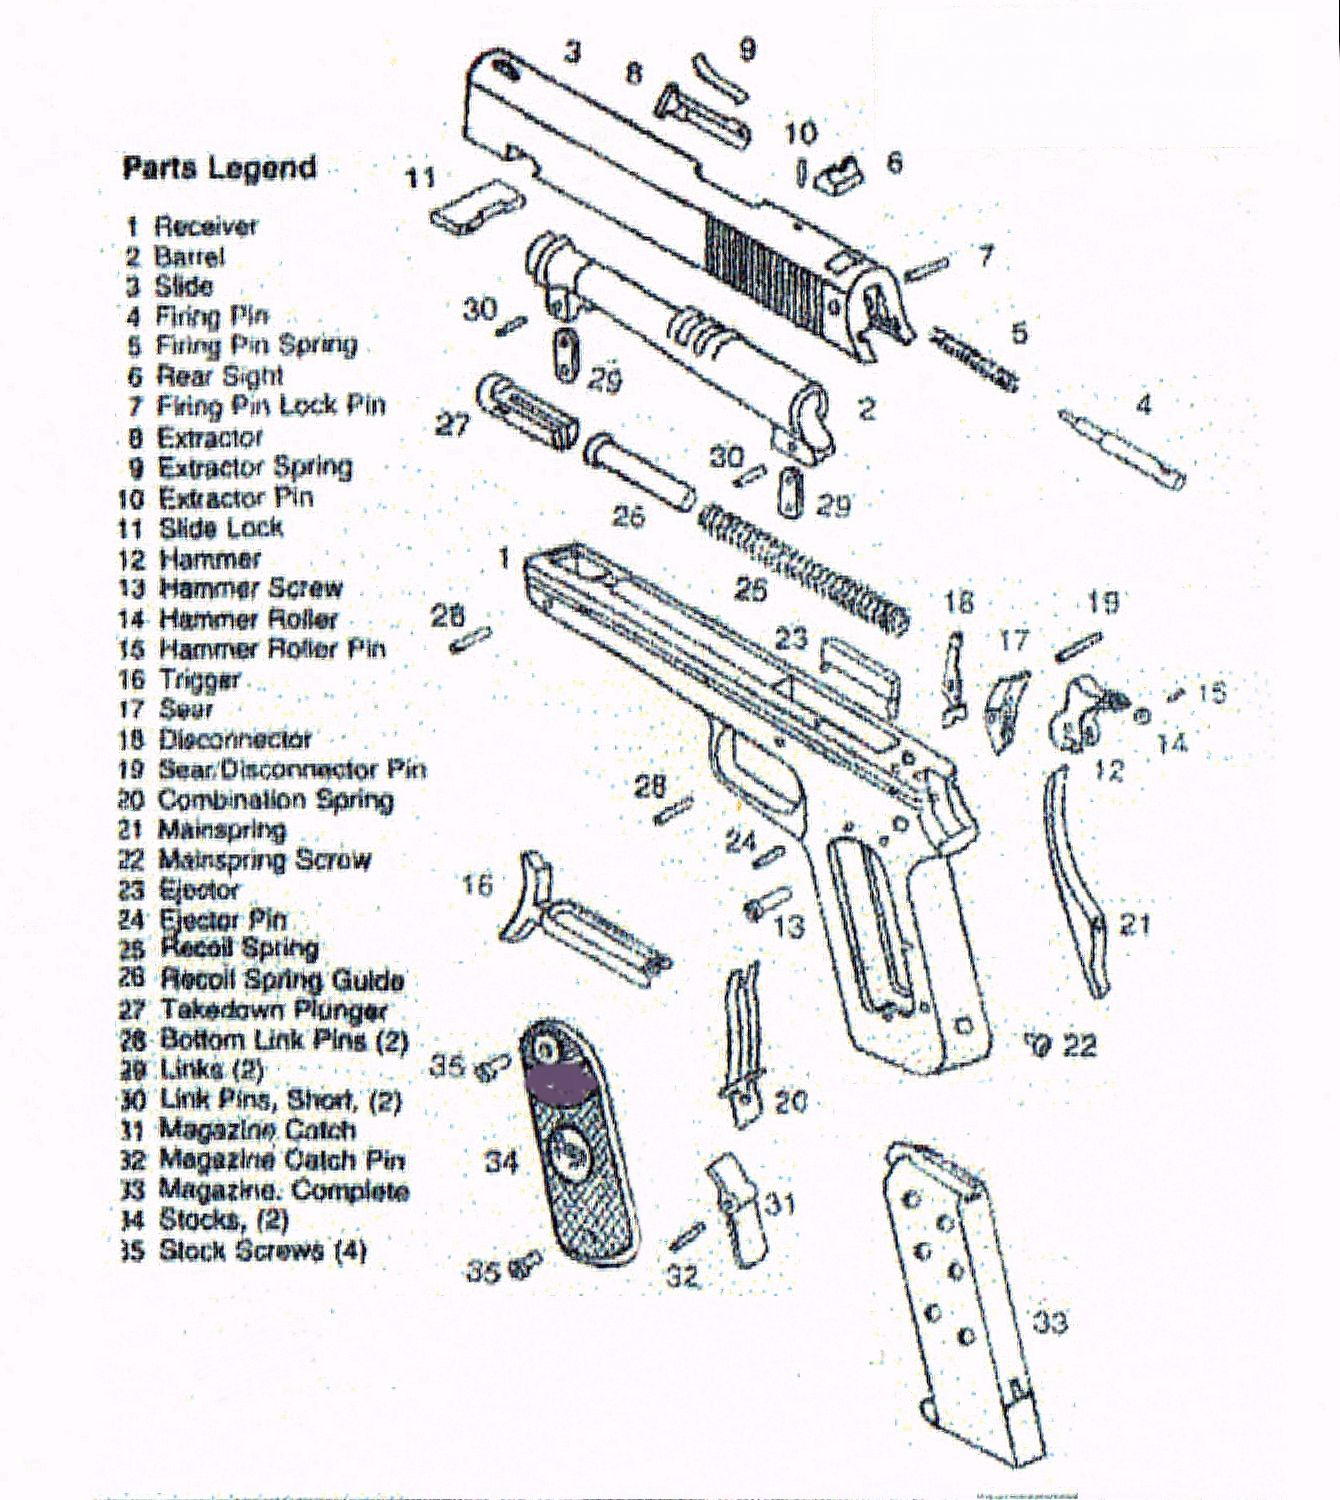 Glock 26 Parts Diagram 1994 Jeep Grand Cherokee Limited Stereo Wiring Pistola Browning Mod 1903 Guerre Fn Origen Herstal